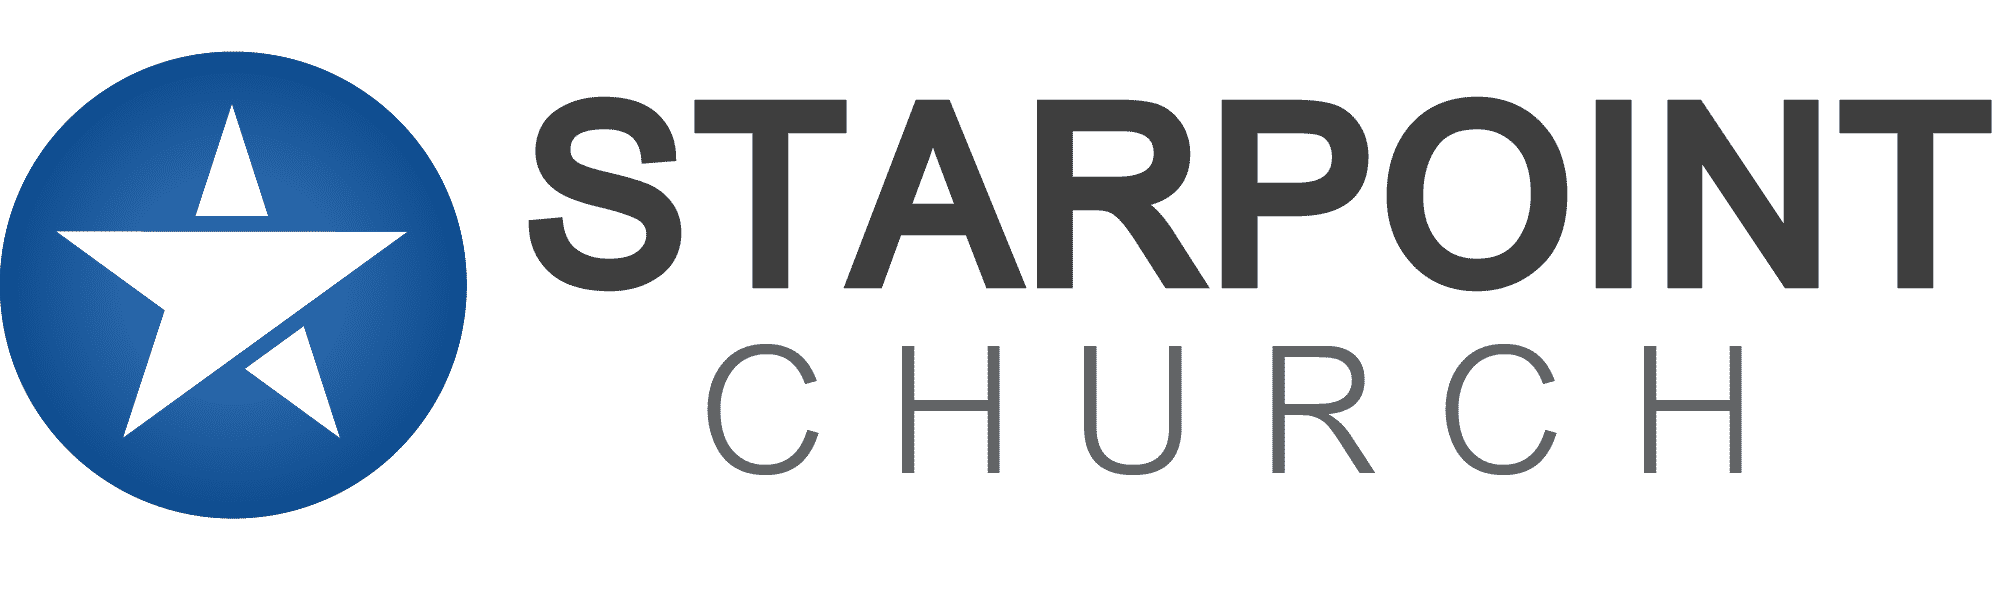 Starpoint Church